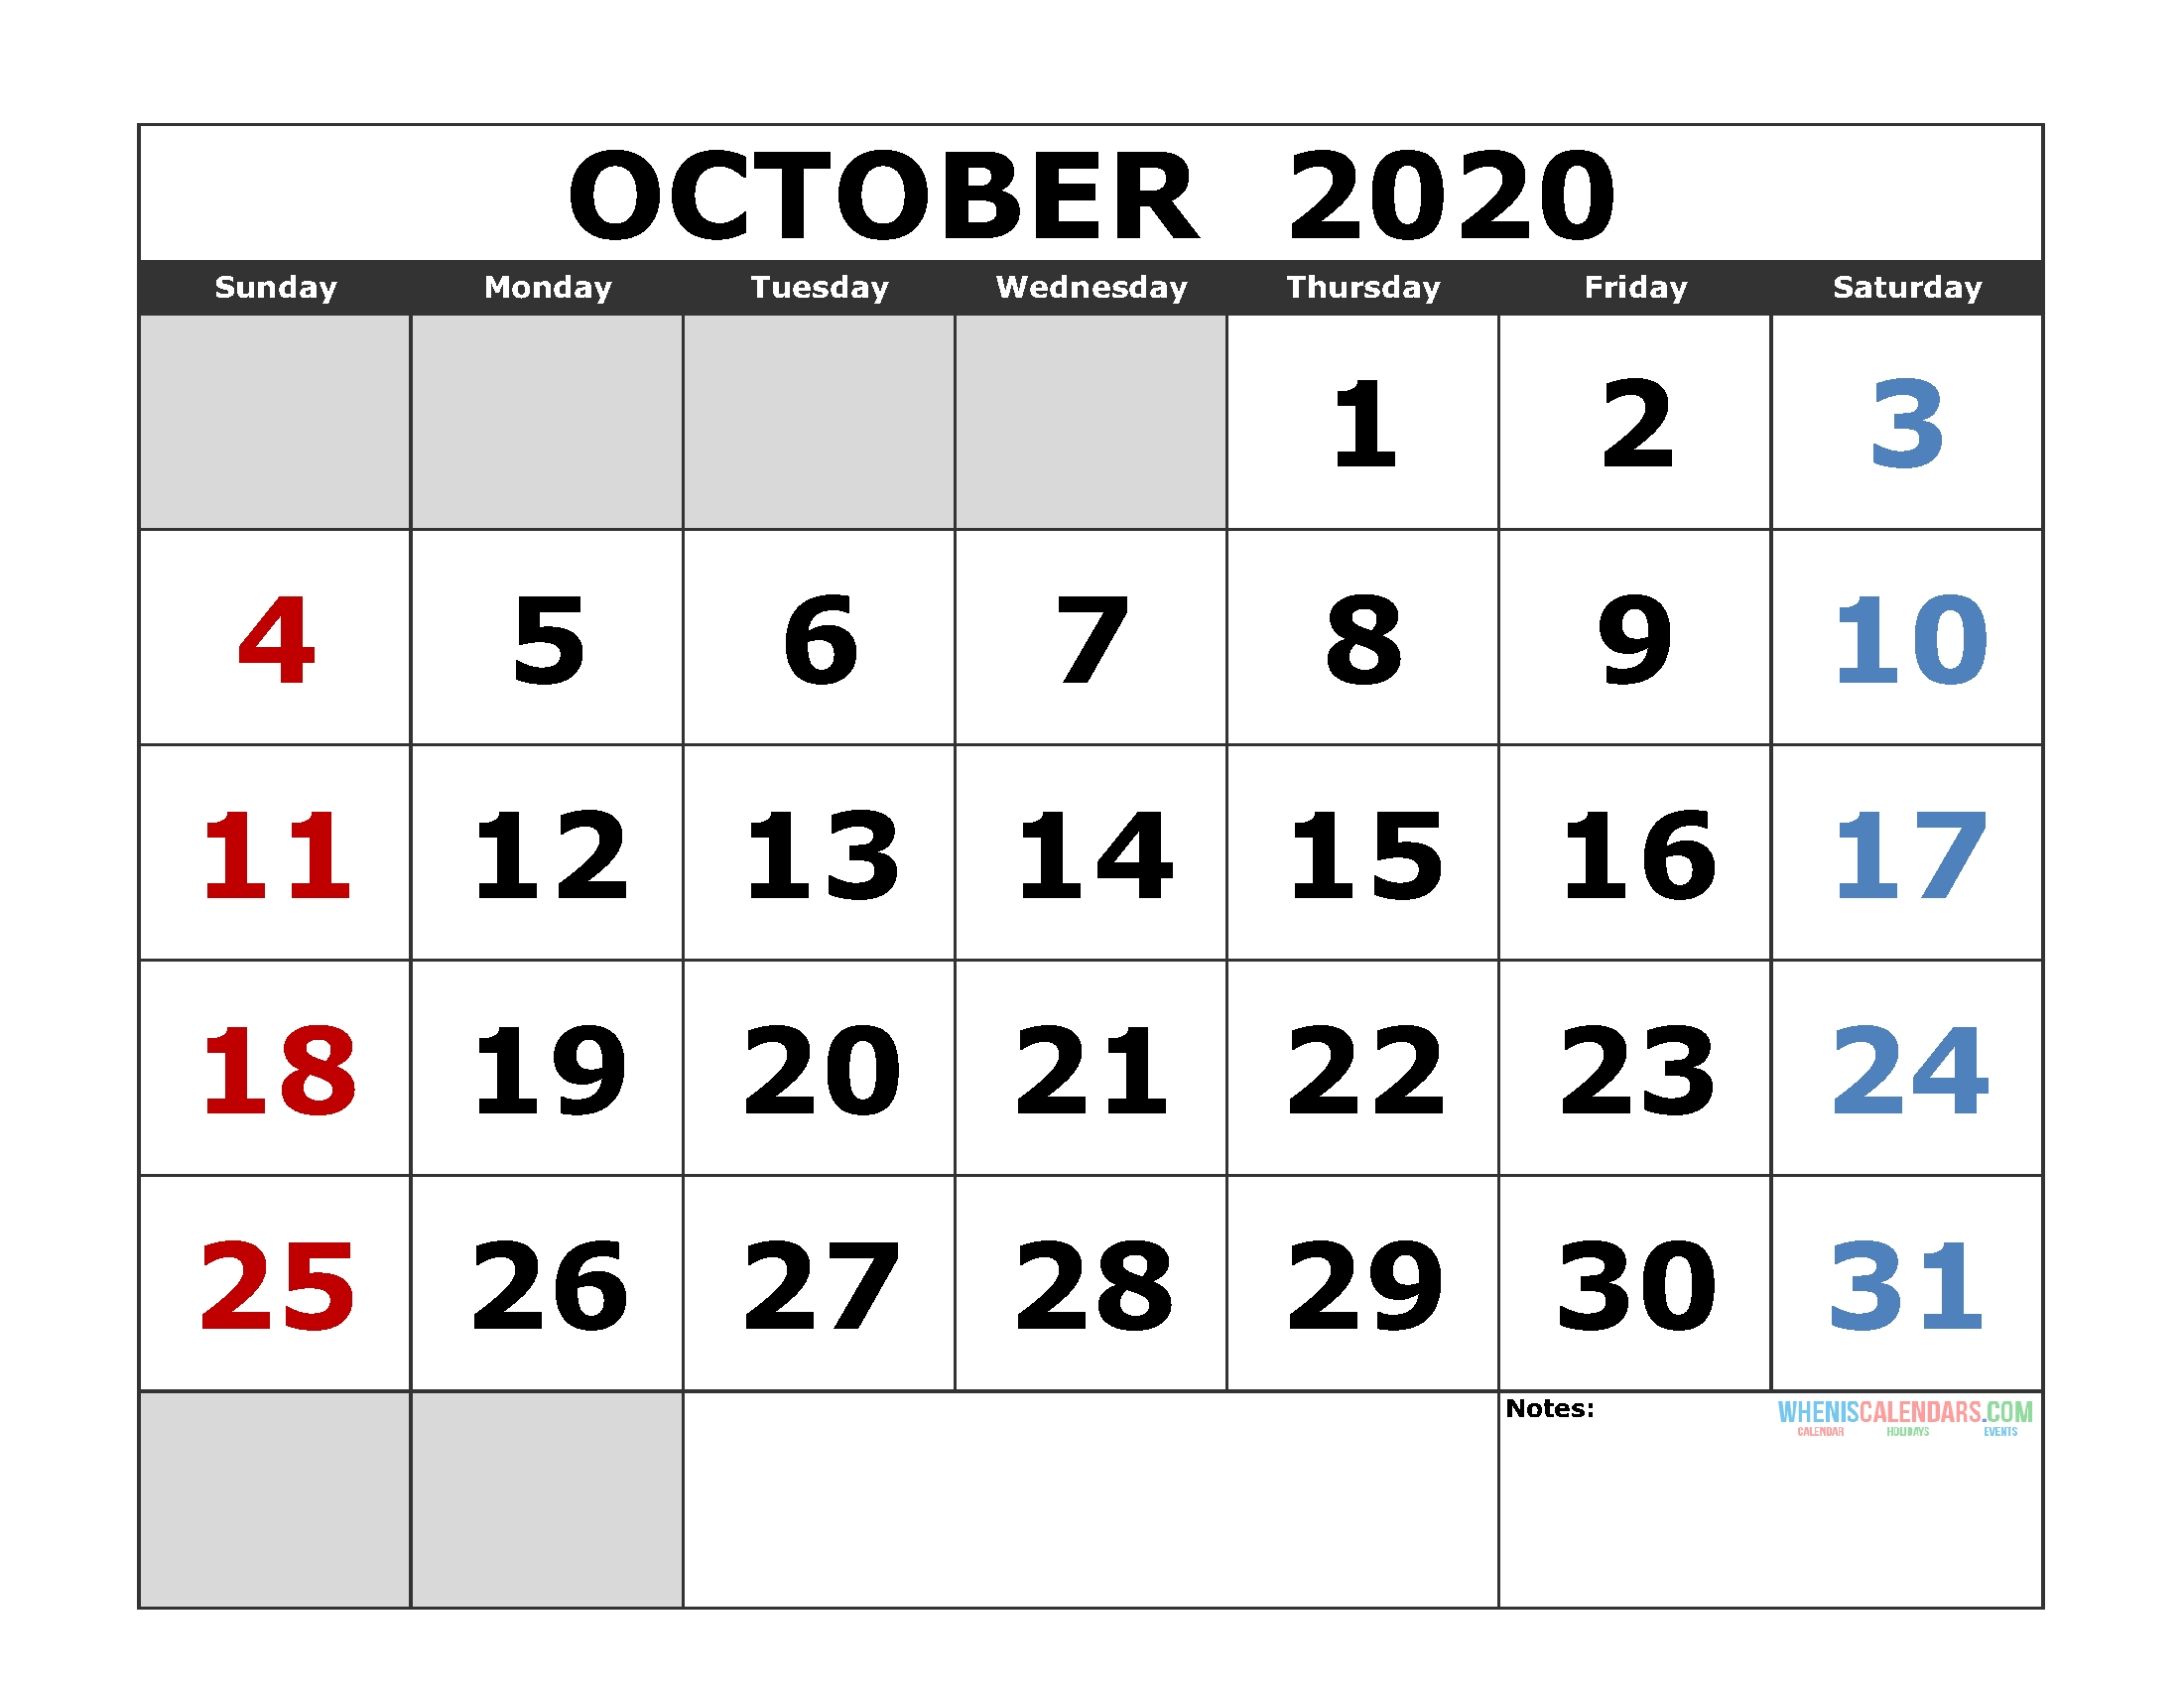 Jewish Holidays October 2020 | Calendar Template Printable Within What Year Is It According To The Jewish Calendar